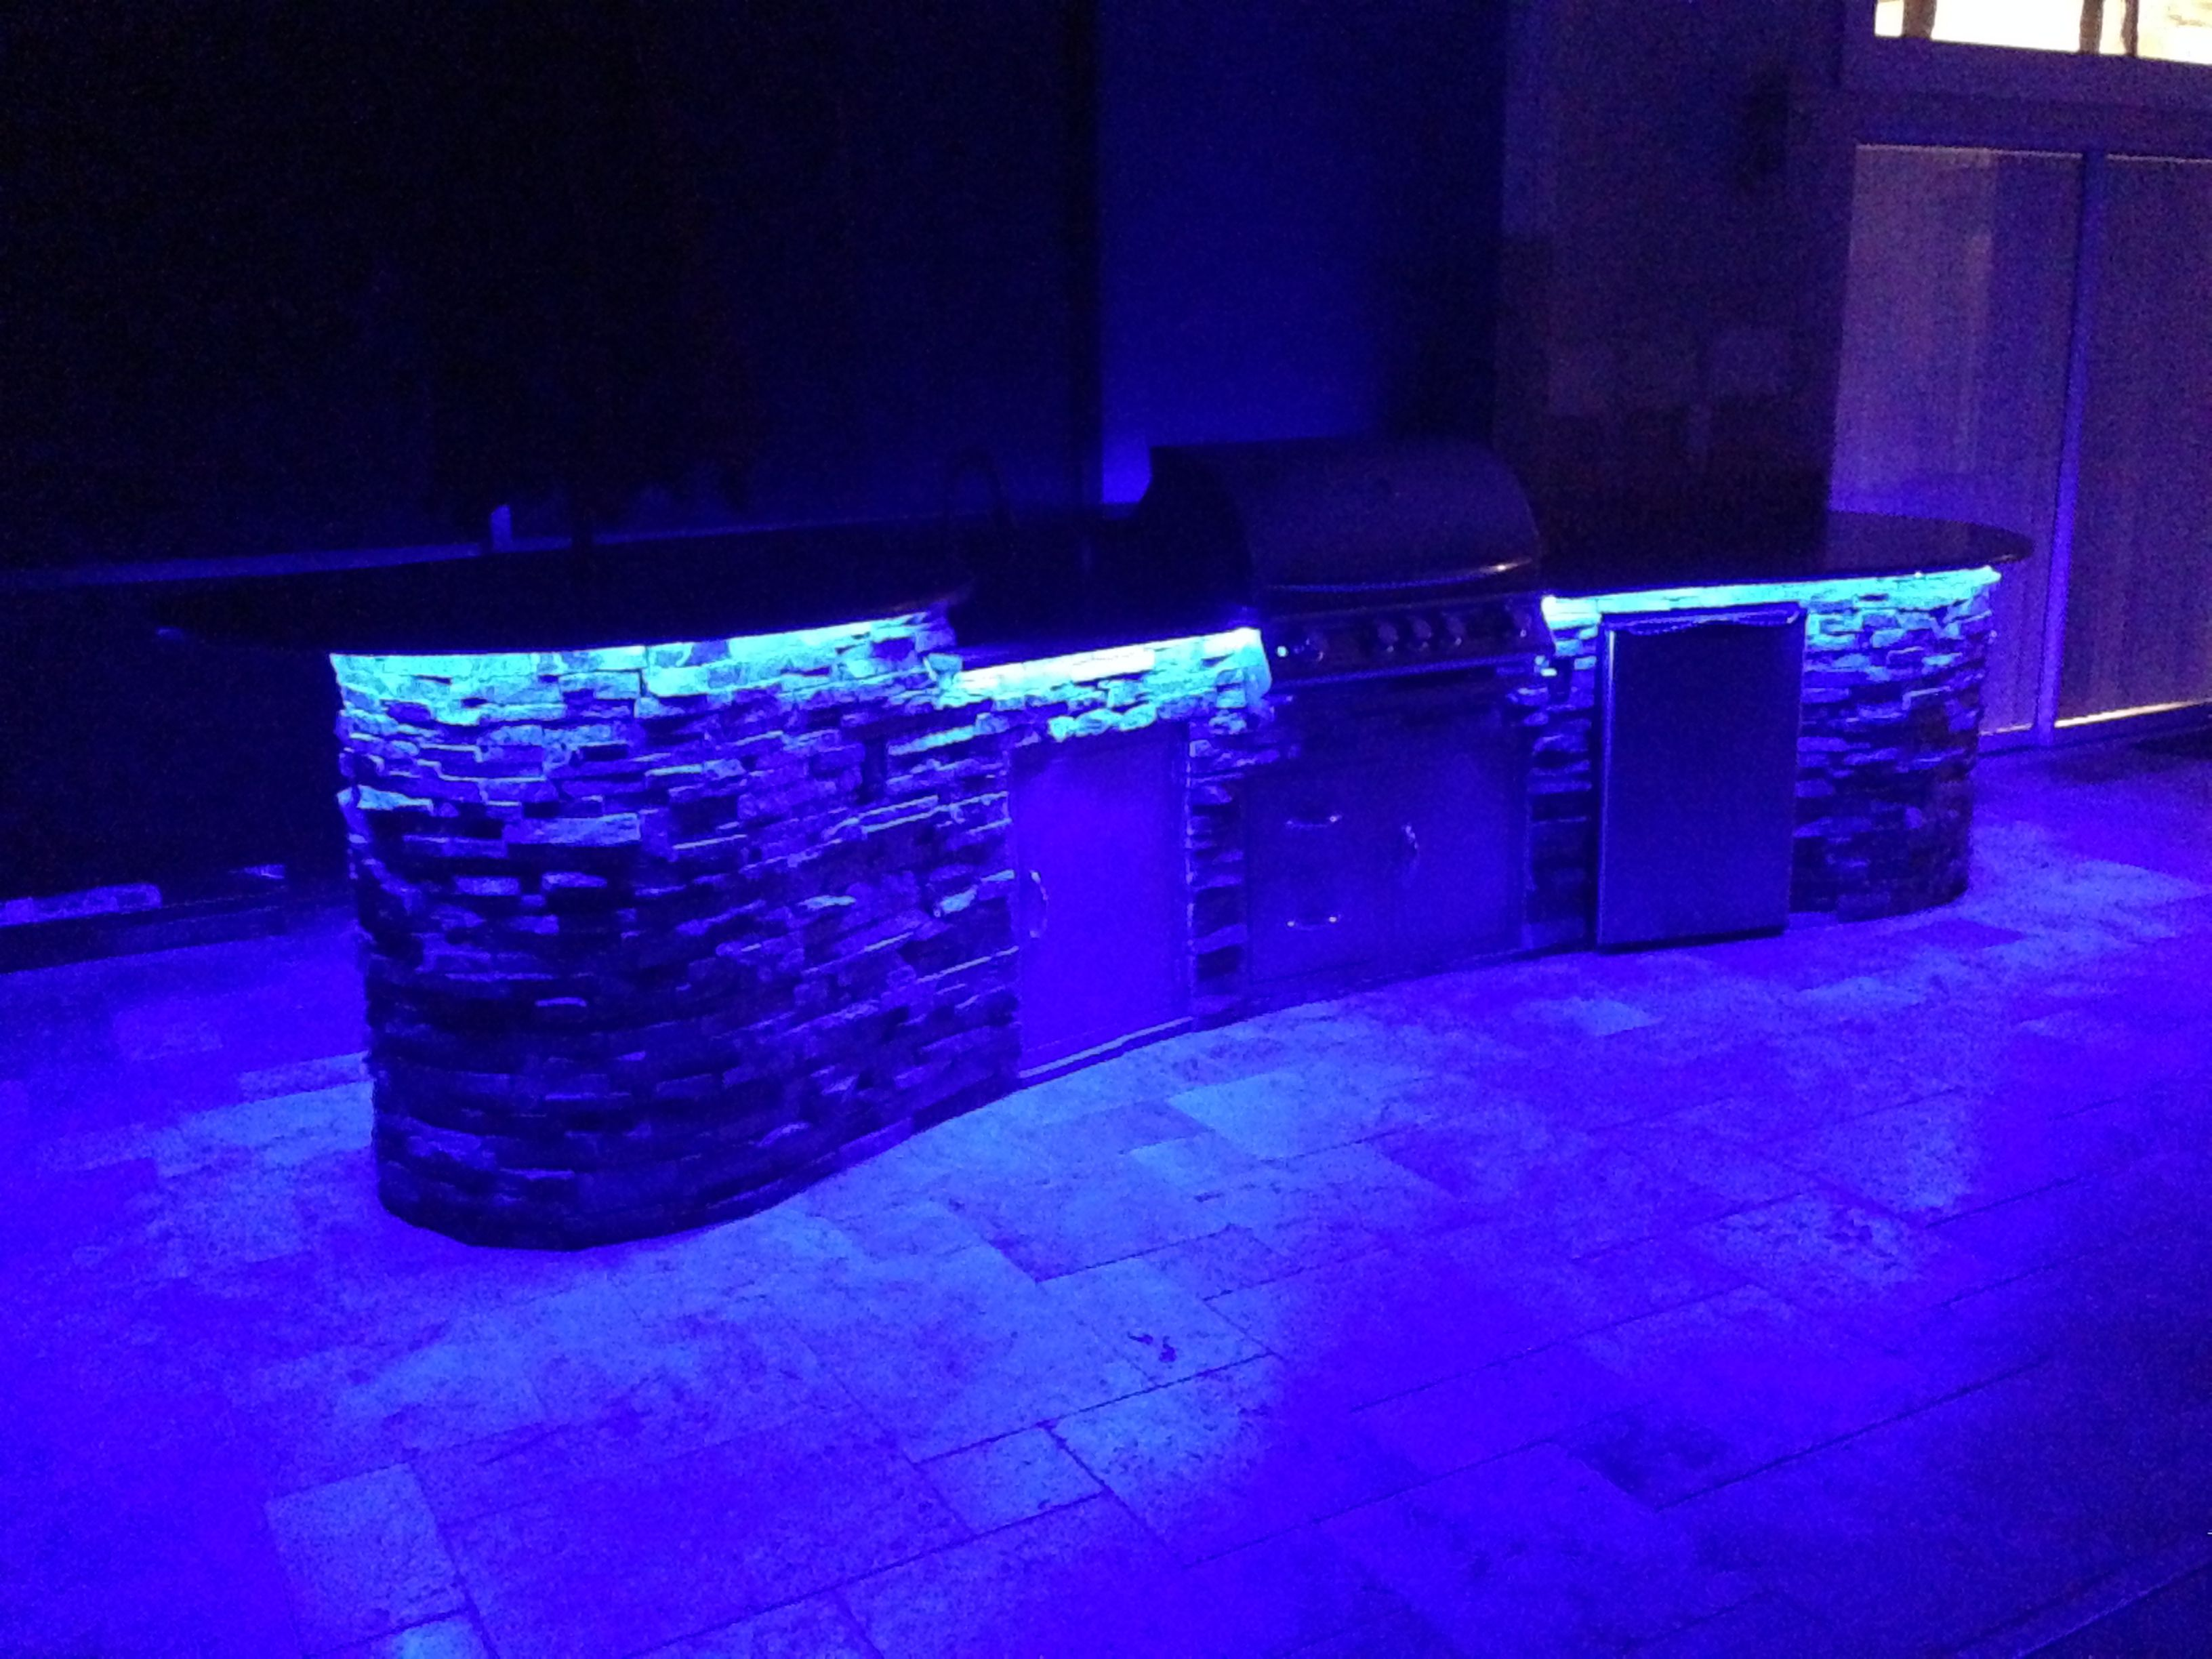 Led Accent Lighting Under Bar Top In Outdoor Kitchen The